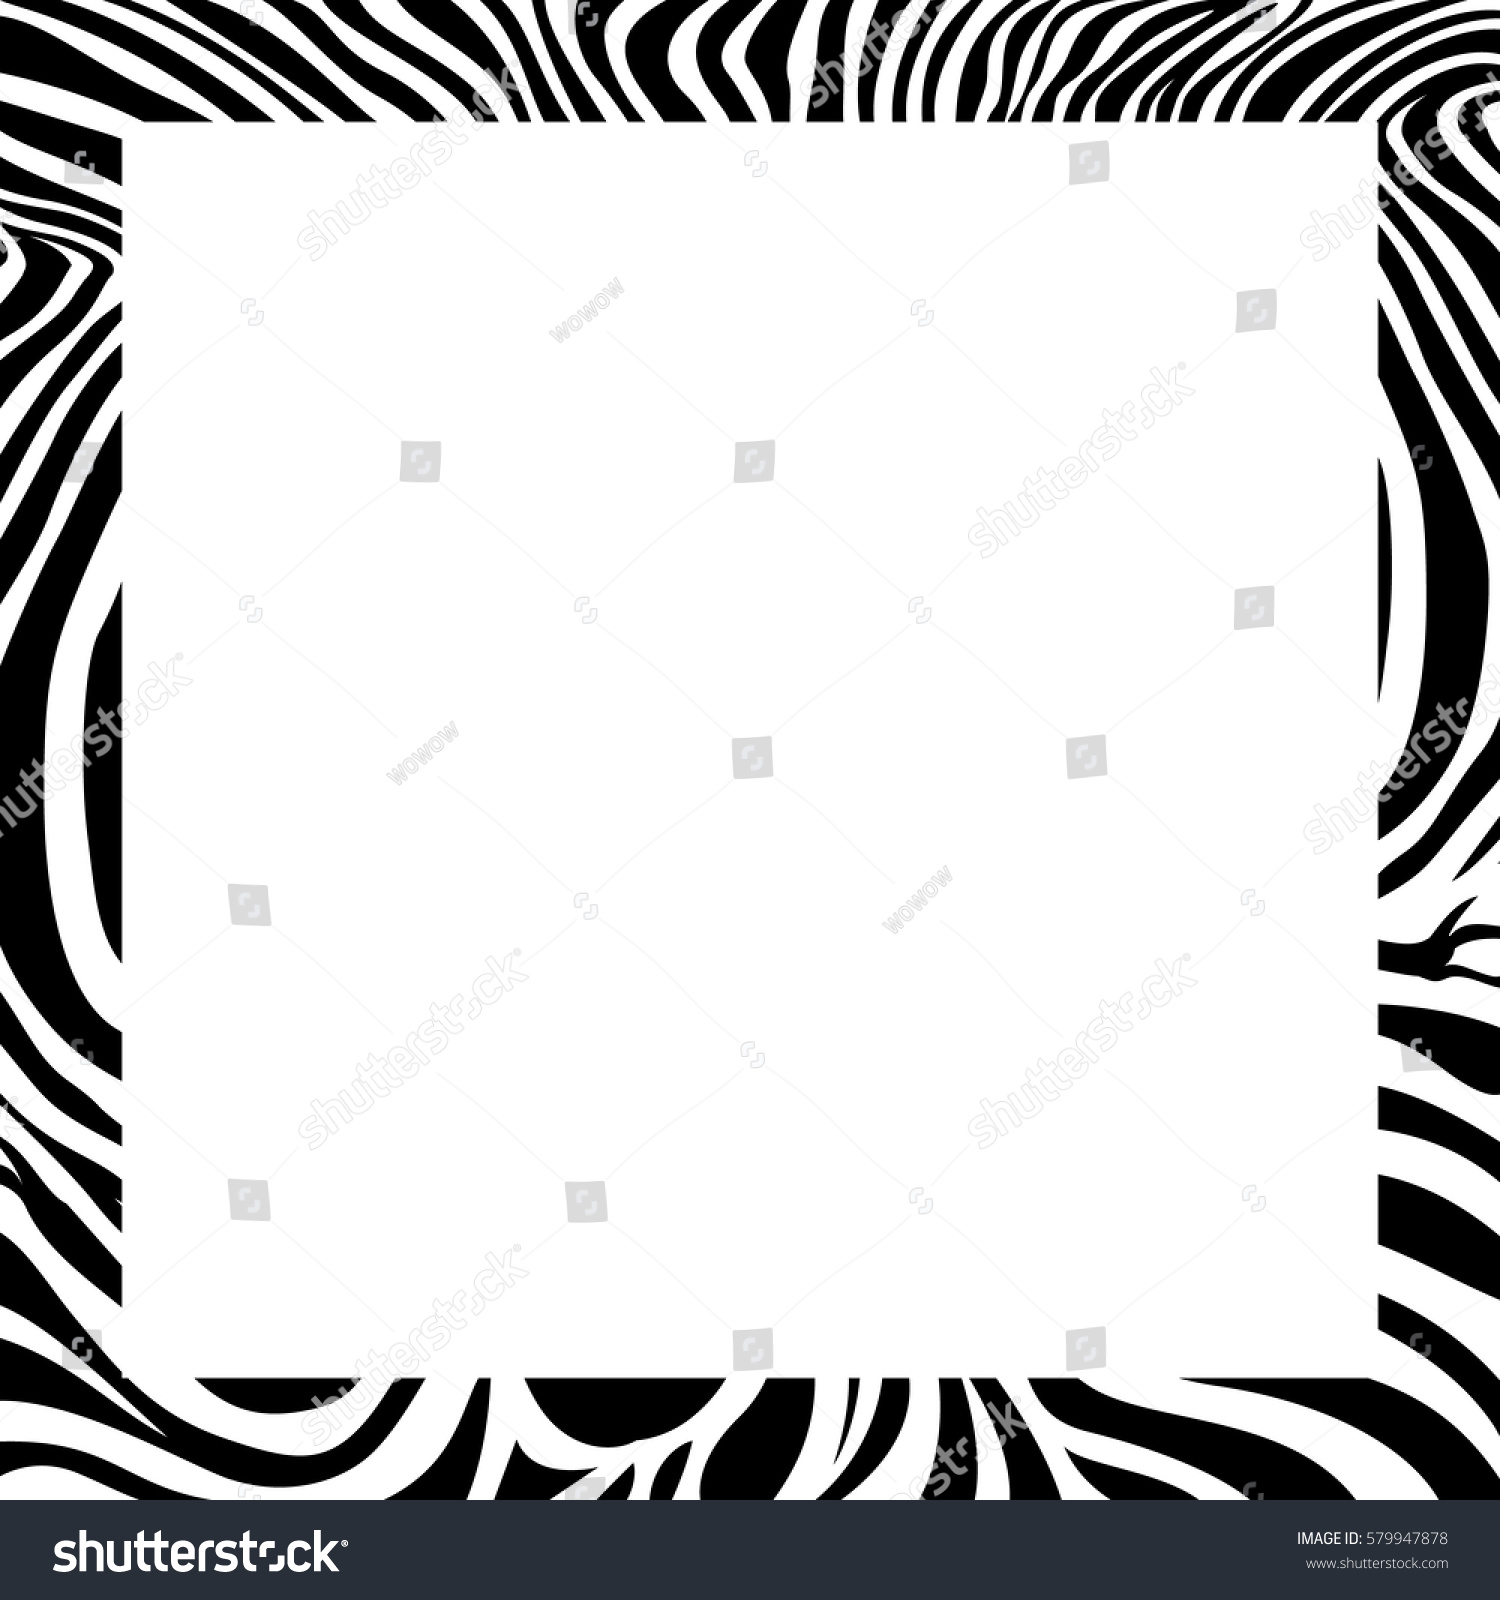 Zebra Print Border Frame Design Animal Vector de stock579947878 ...